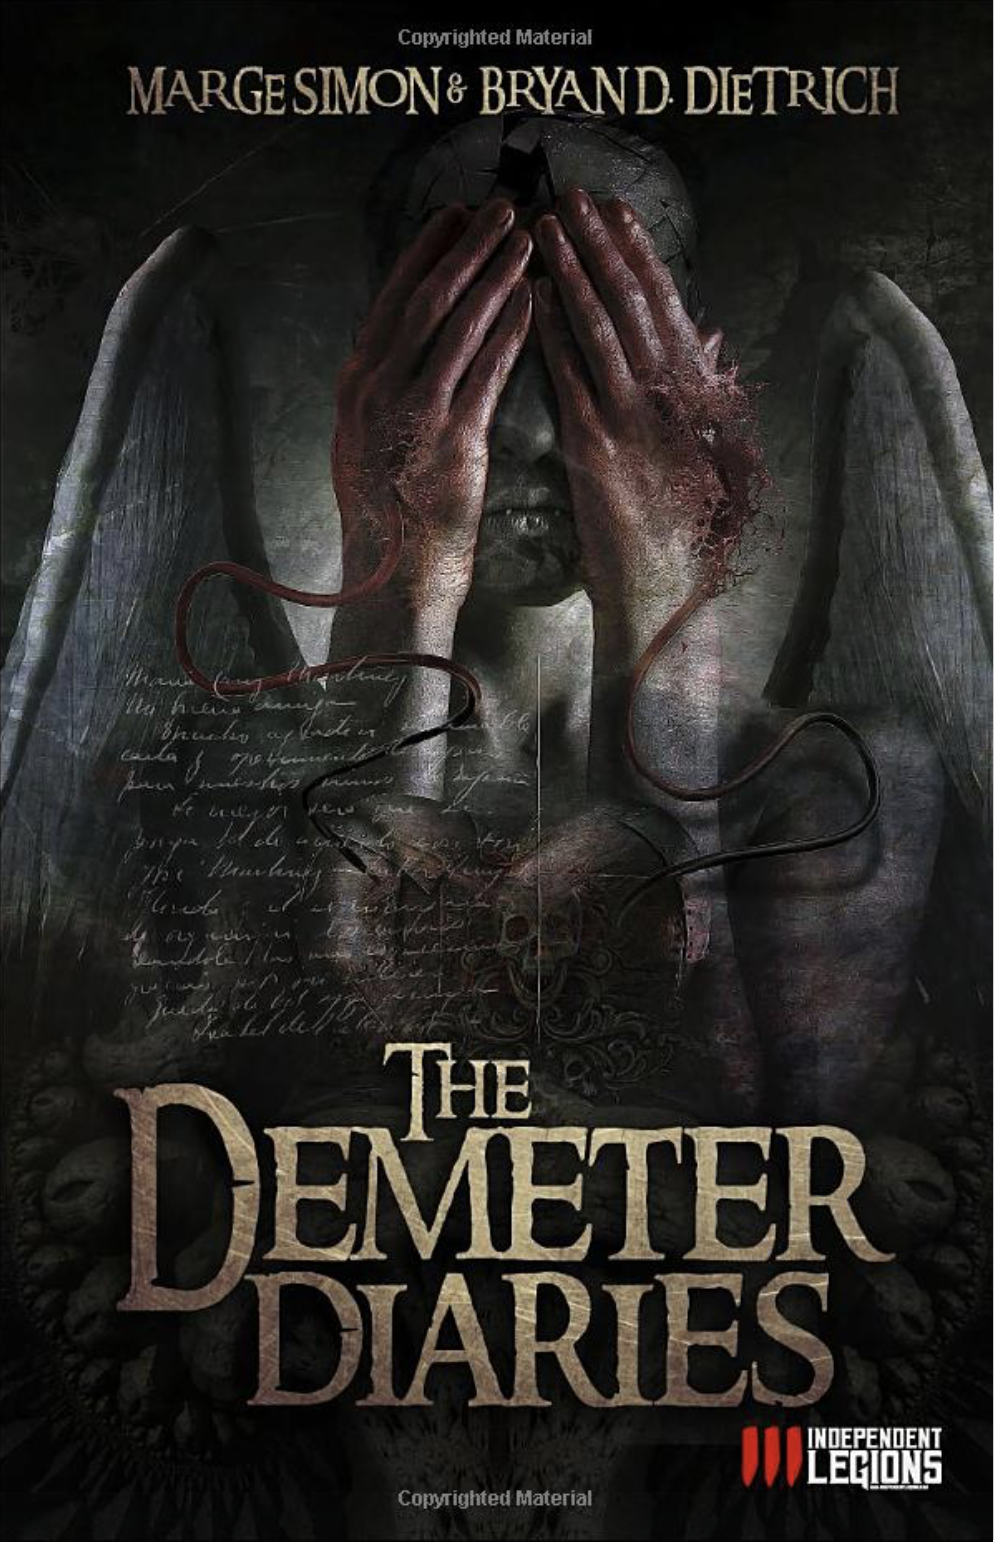 Professor Dietrich's 'The Demeter Diaries' gets published